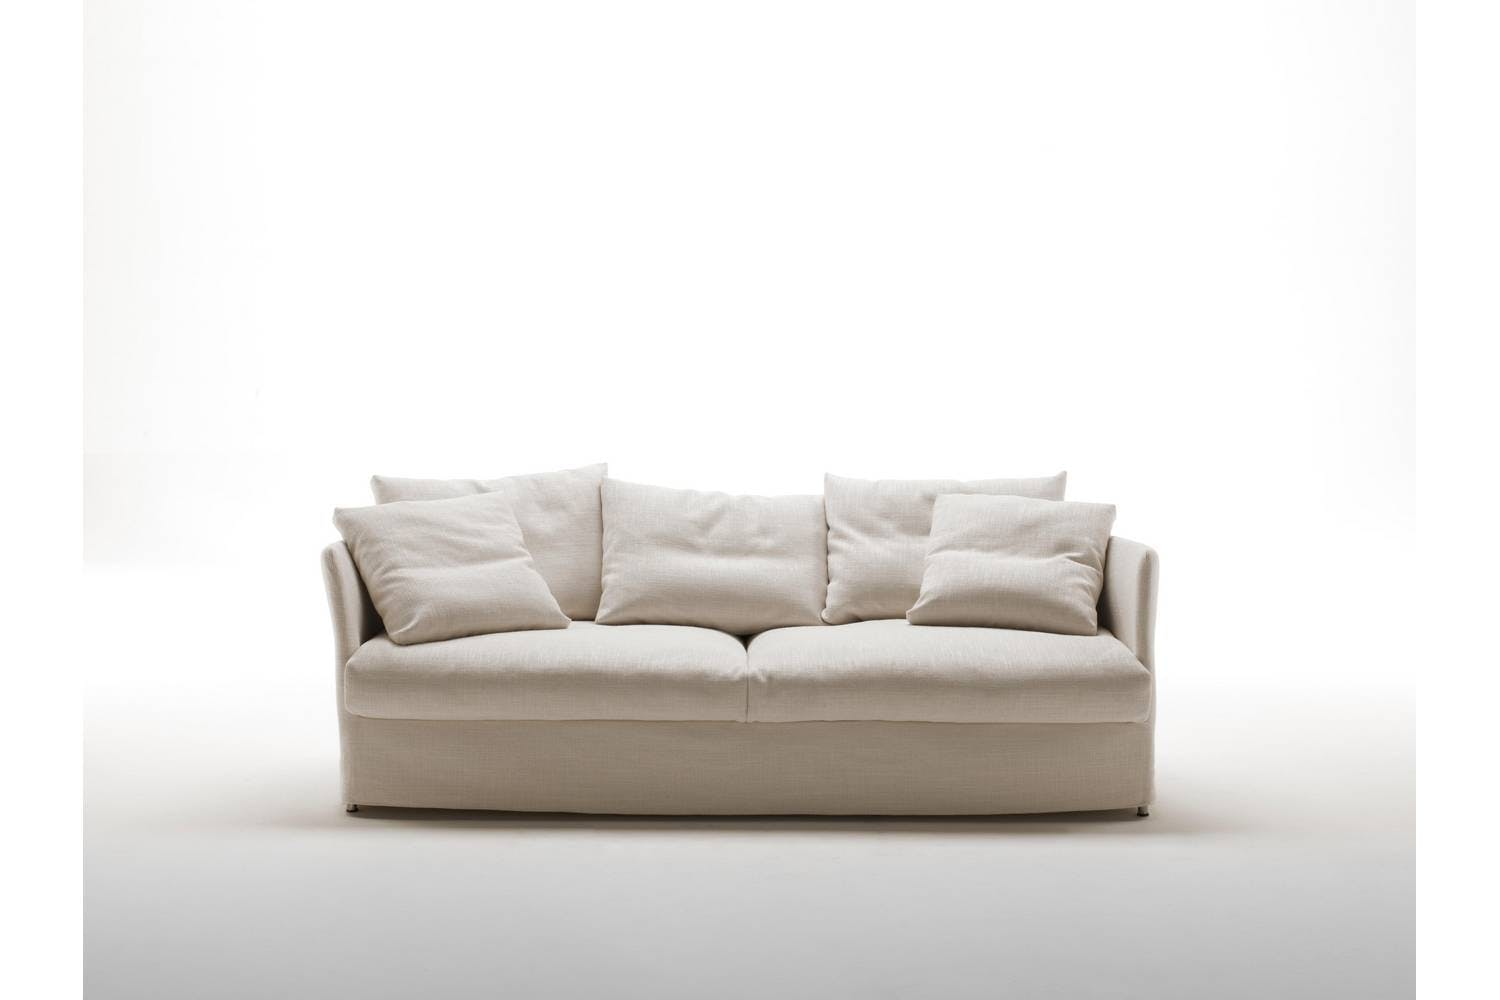 Curve Sofa by Piero Lissoni for Living Divani | Space Furniture